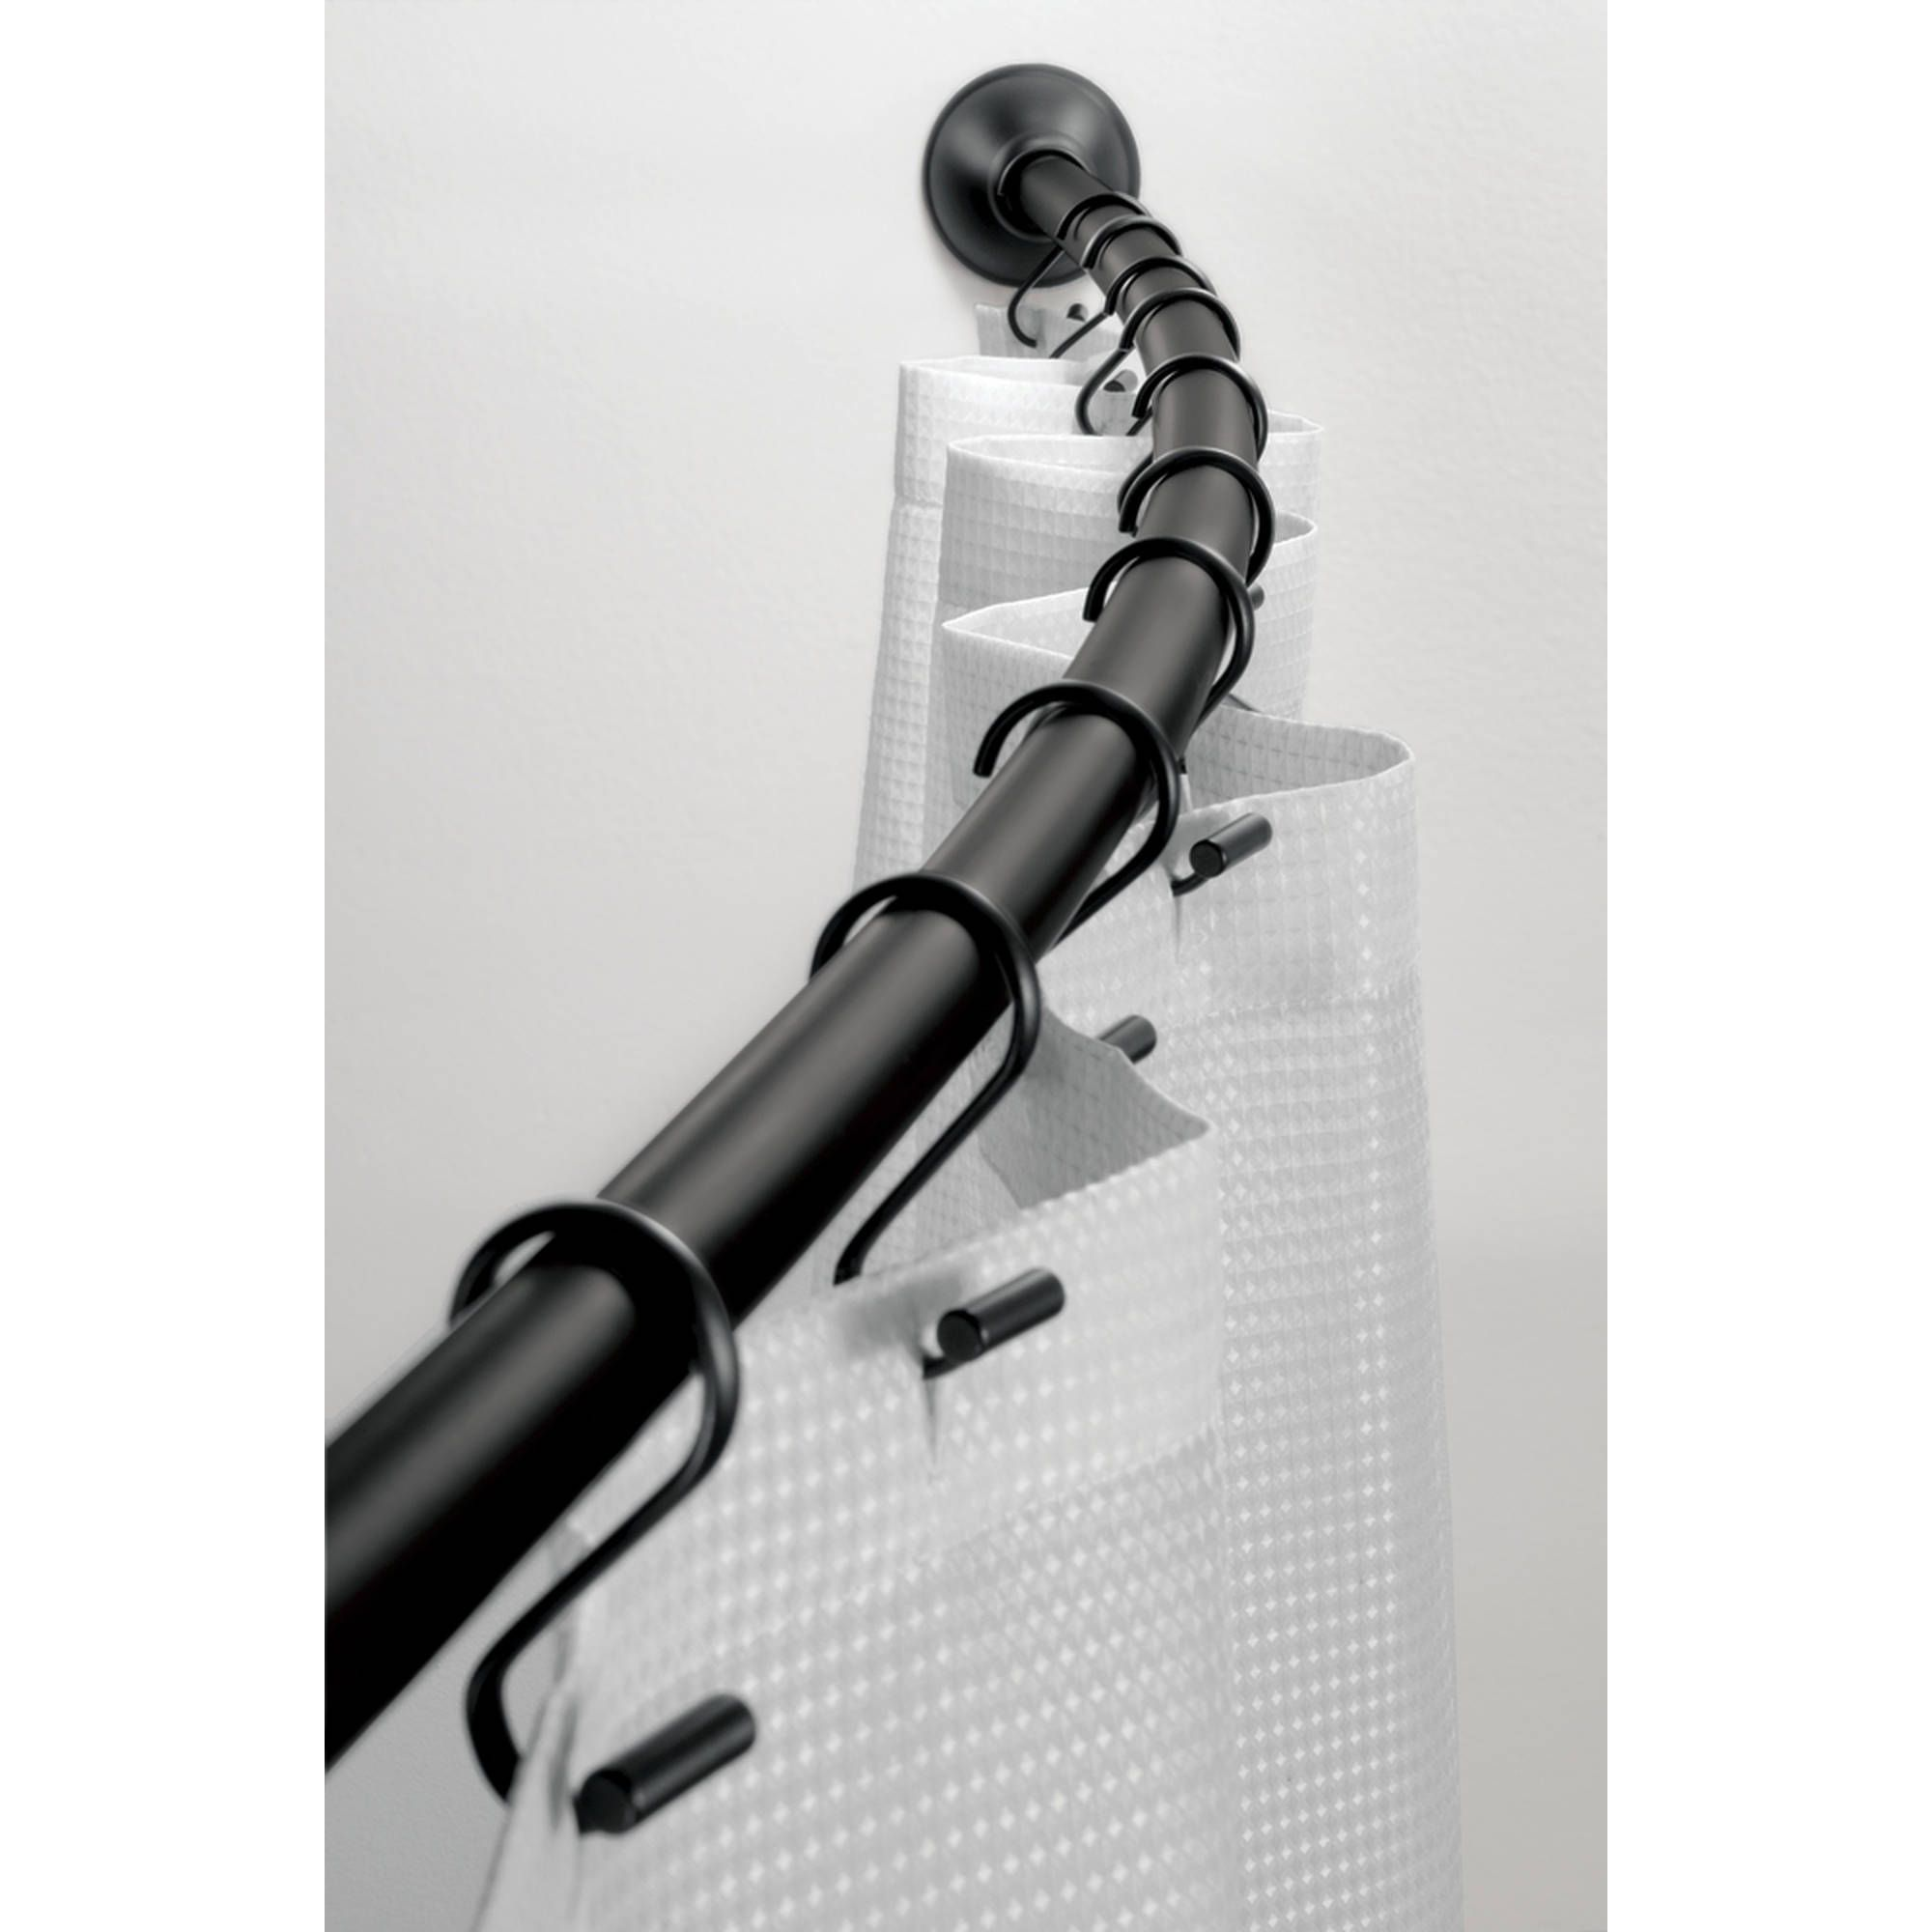 Home In 2020 Black Shower Curtains Shower Curtain Rods Black Tub